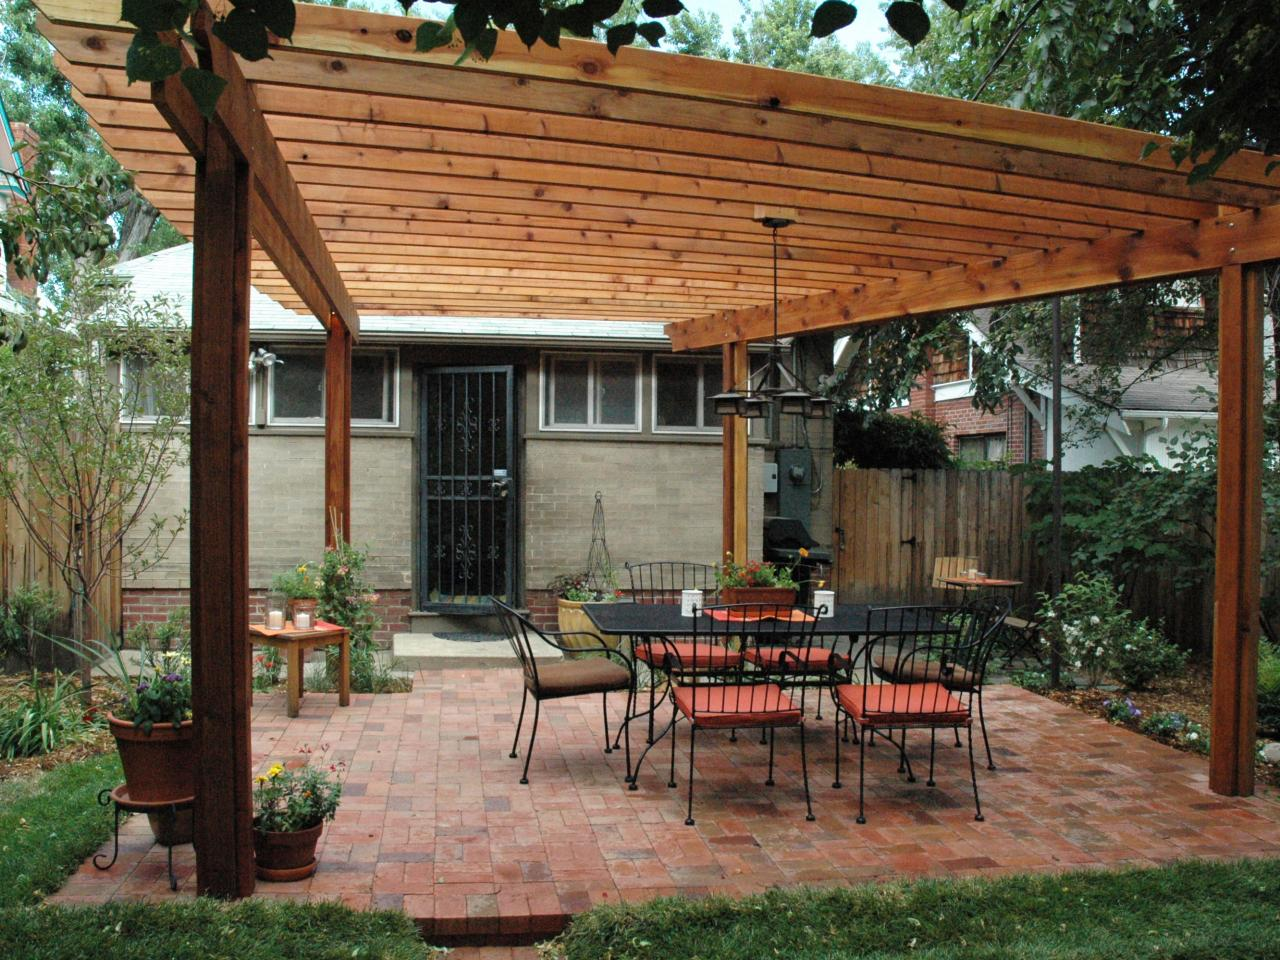 Arbor Installation-Euless TX Professional Landscapers & Outdoor Living Designs-We offer Landscape Design, Outdoor Patios & Pergolas, Outdoor Living Spaces, Stonescapes, Residential & Commercial Landscaping, Irrigation Installation & Repairs, Drainage Systems, Landscape Lighting, Outdoor Living Spaces, Tree Service, Lawn Service, and more.